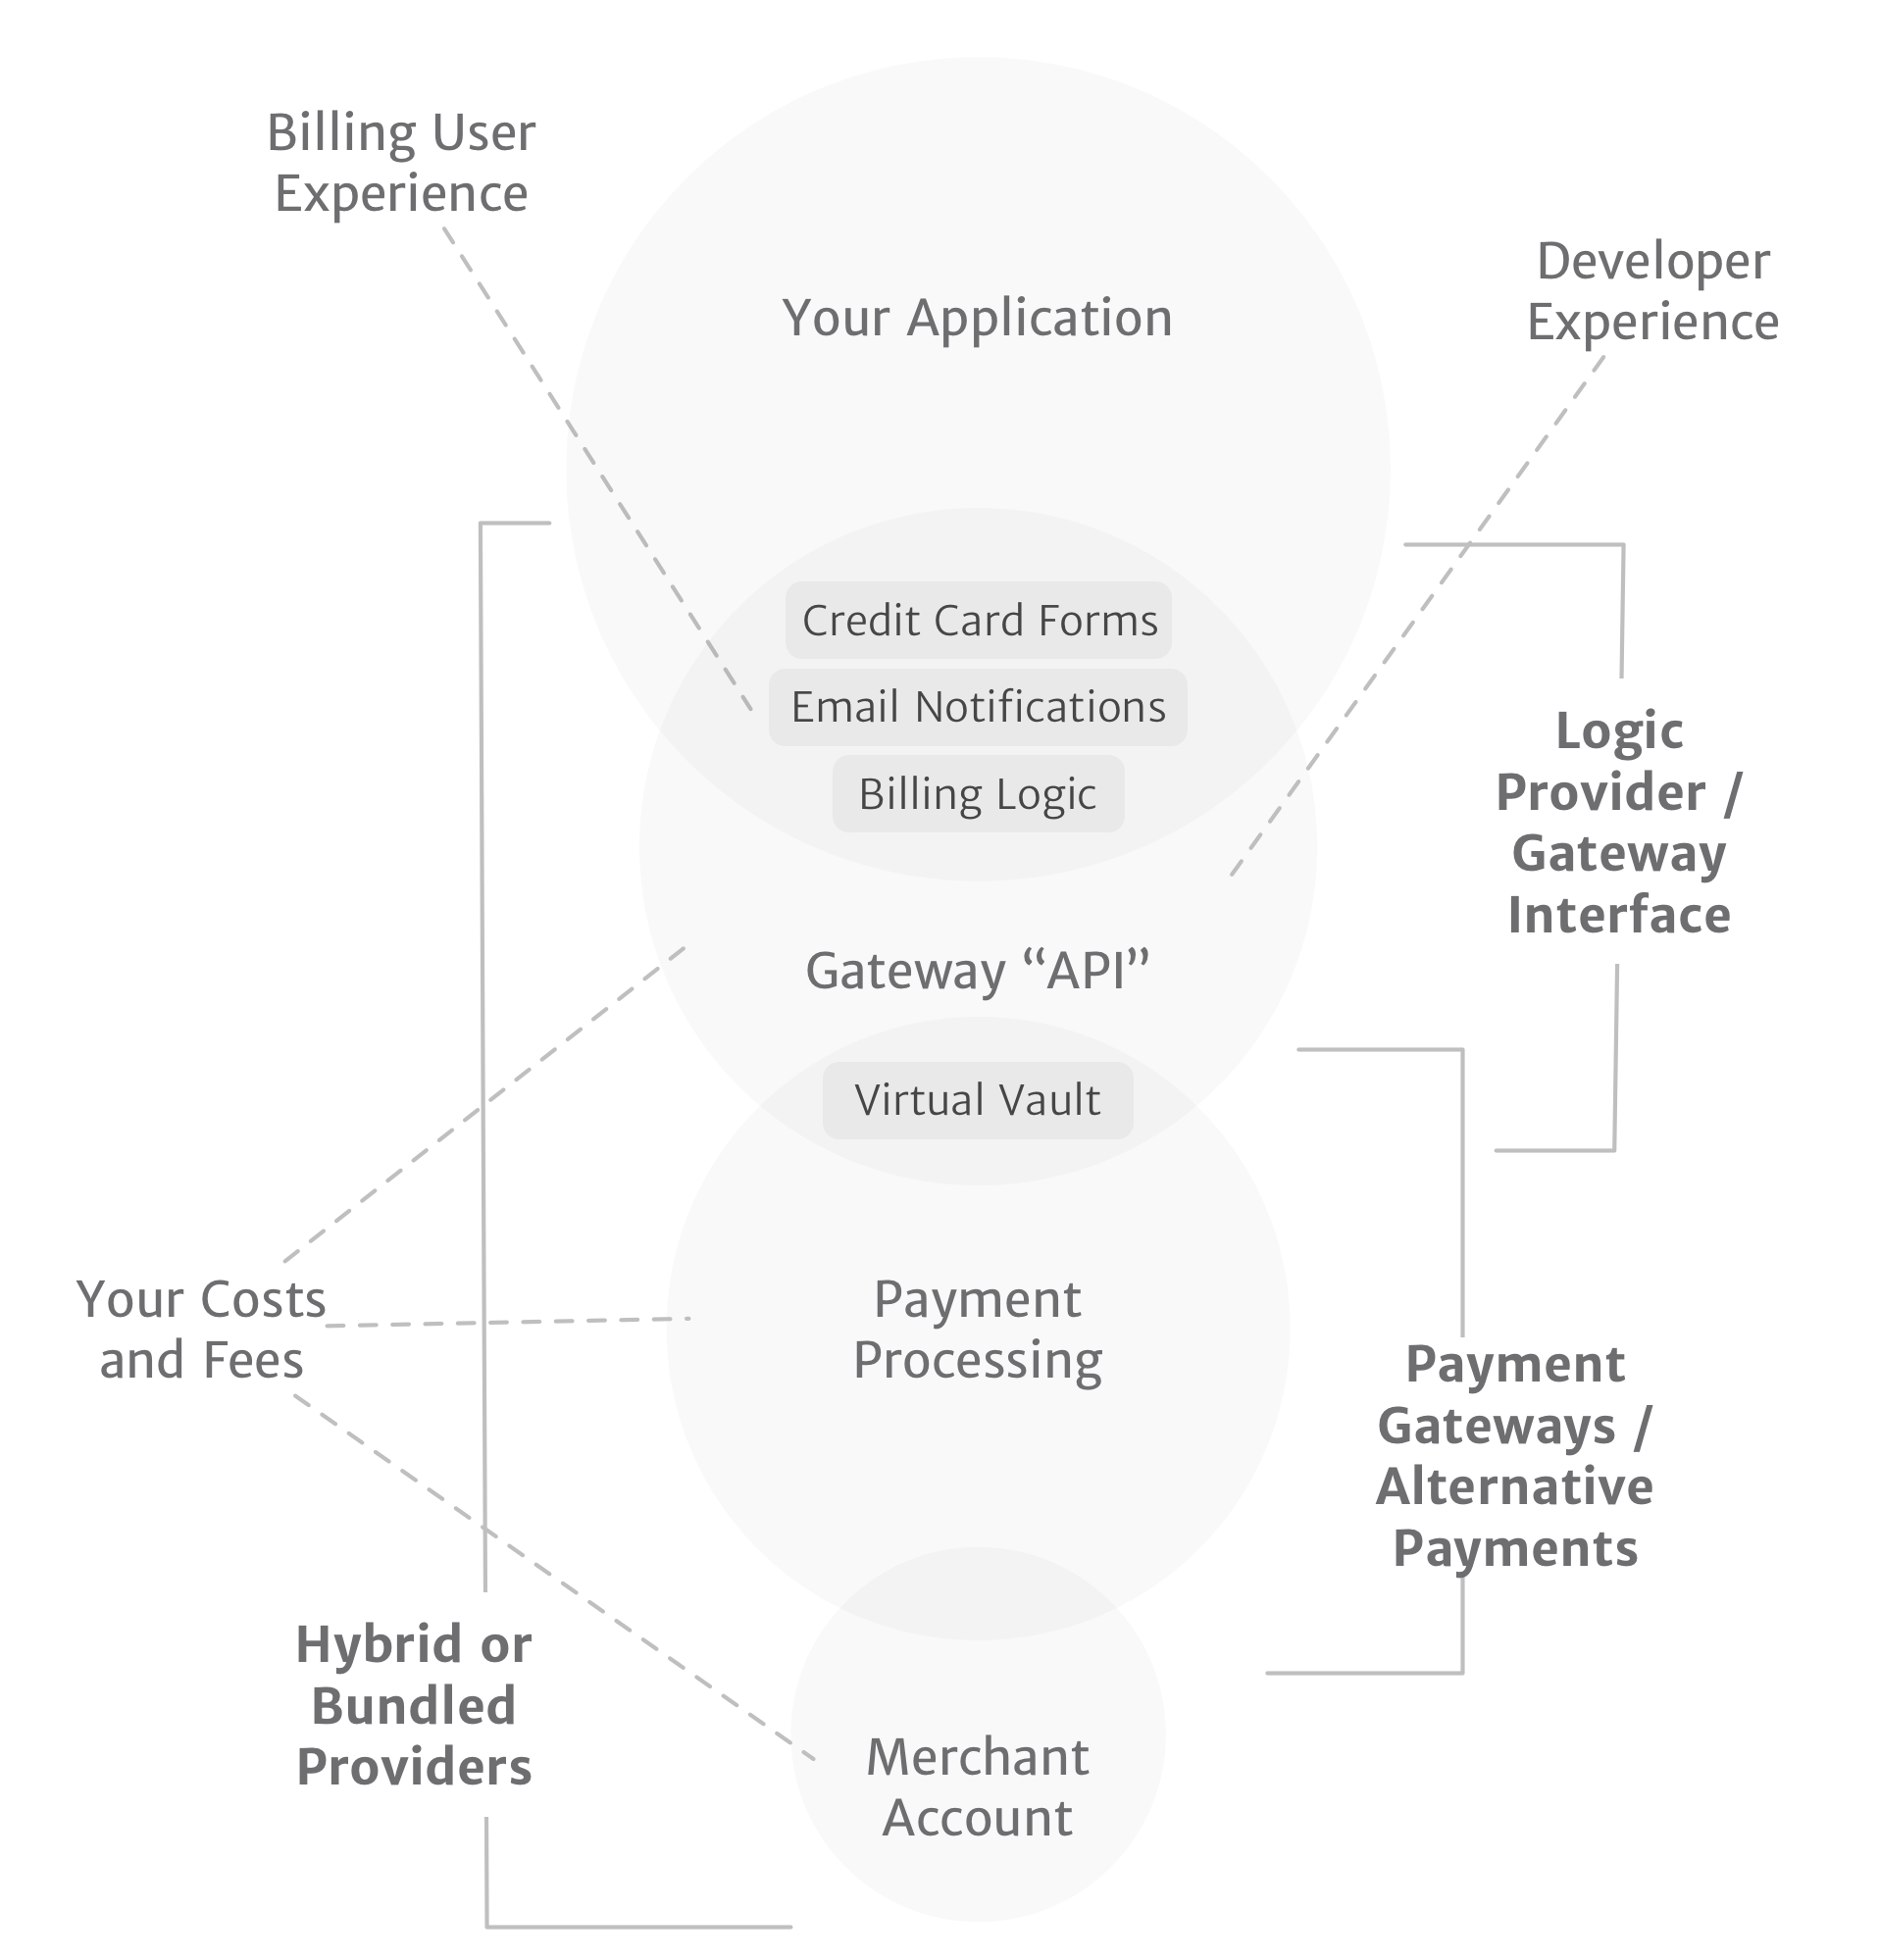 How the different components of the billing and payment processing ecosystem fit together. This is an overview rather than a precise representation of a payment system.